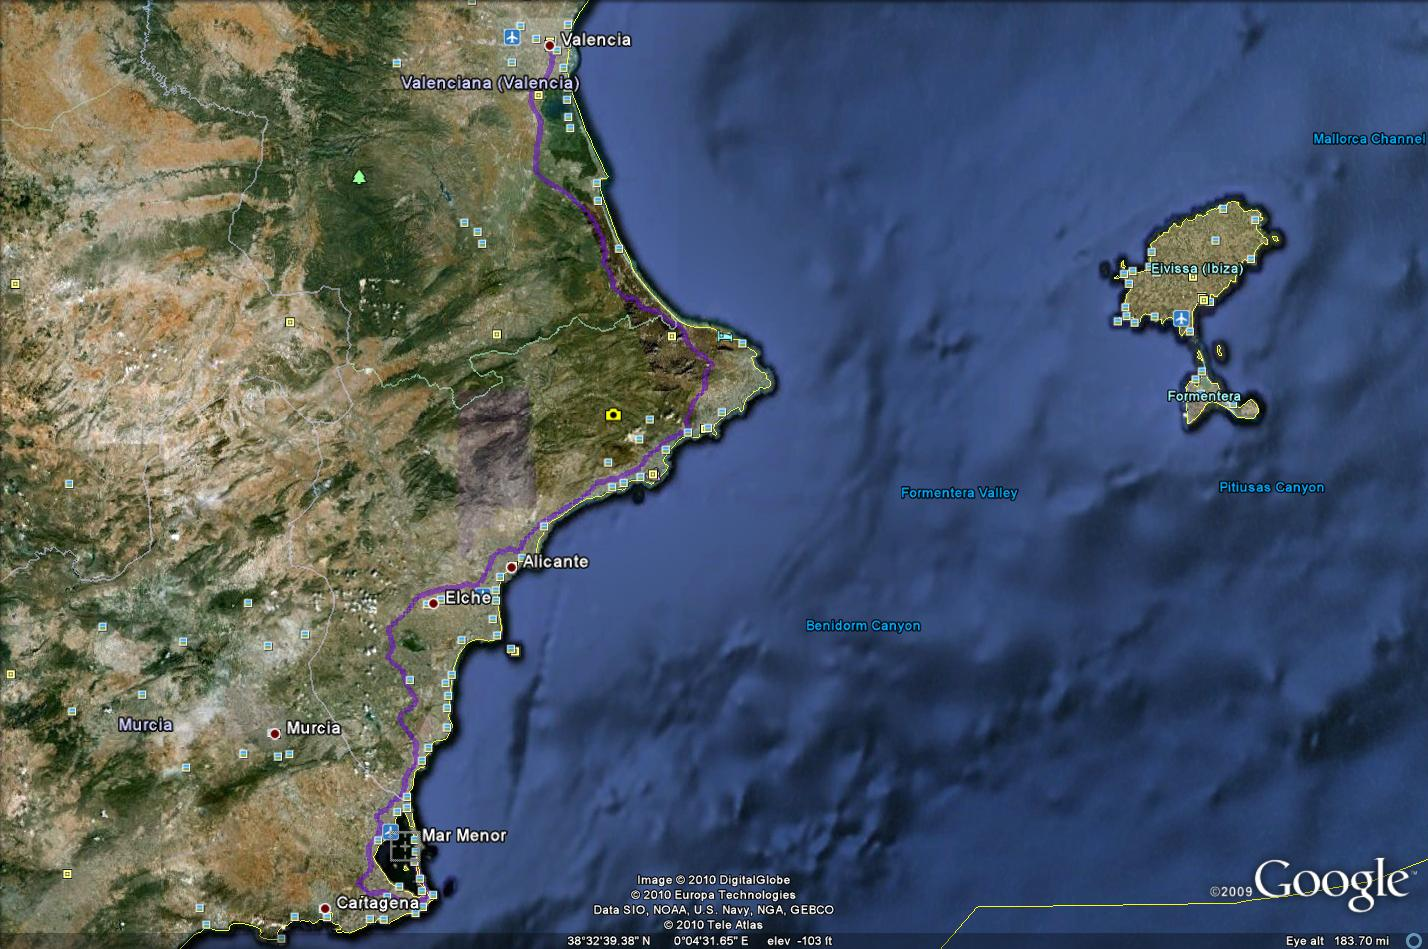 Route from Valencia to Mar Menor (To see full image of route click on picture and again when the new  window opens)